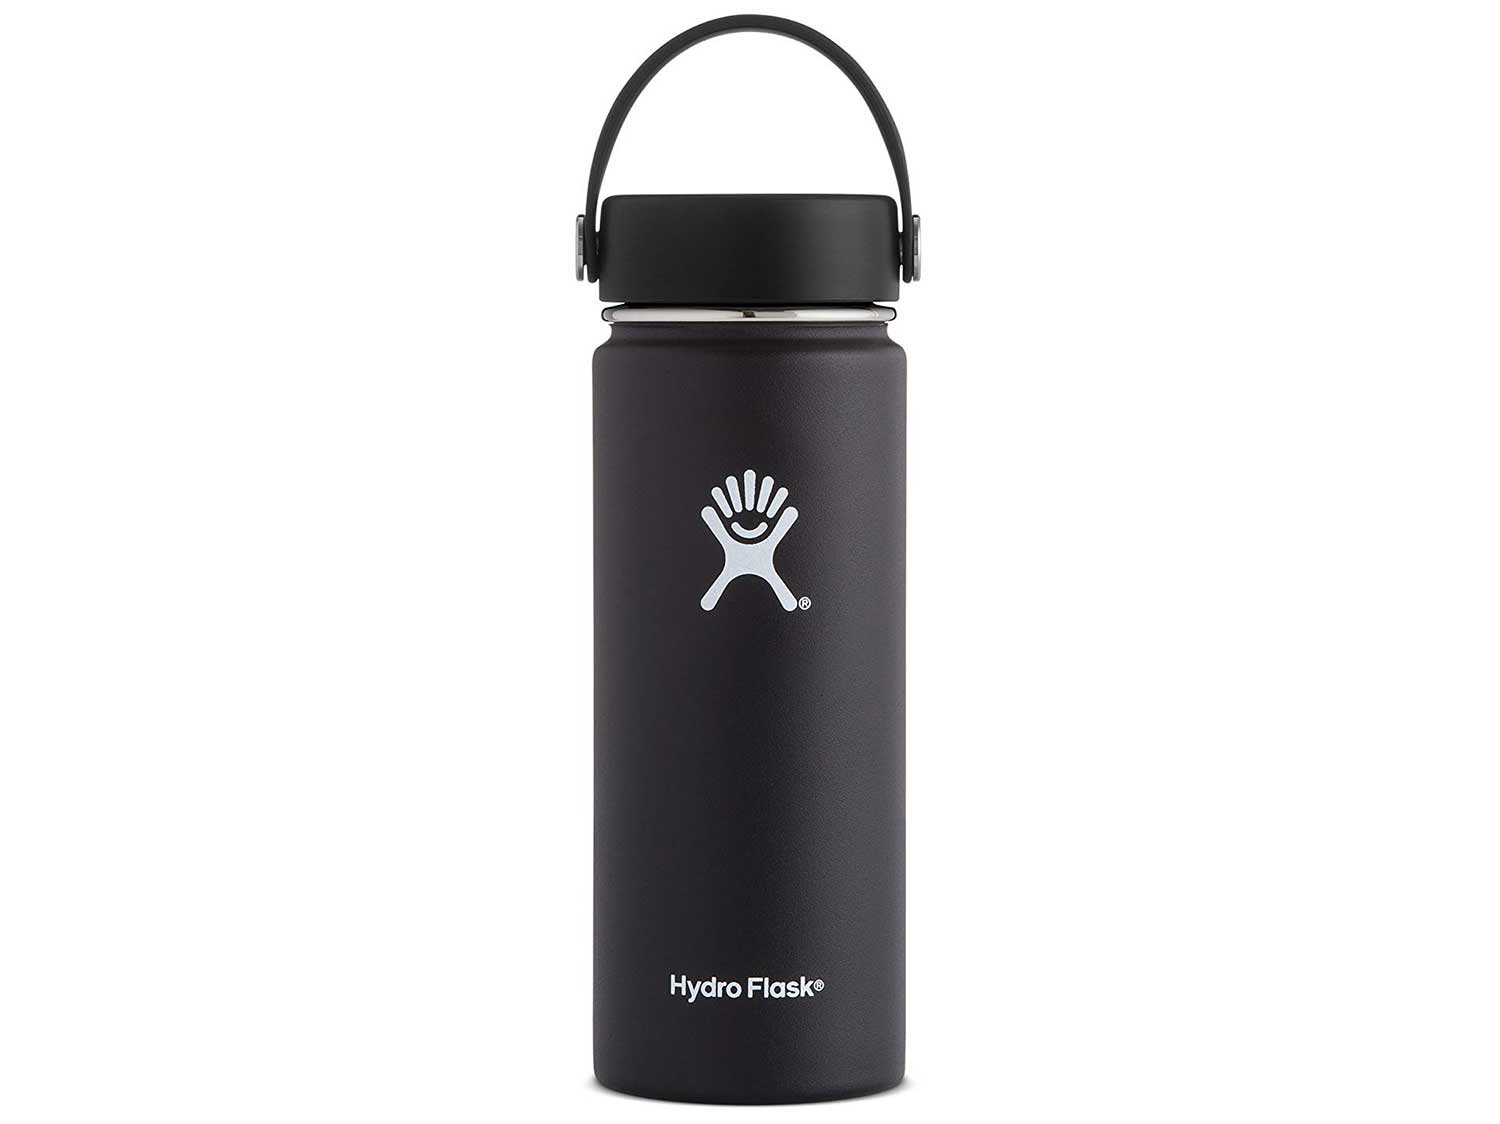 Hydro Flask 18 oz Double Wall Vacuum Insulated Stainless Steel